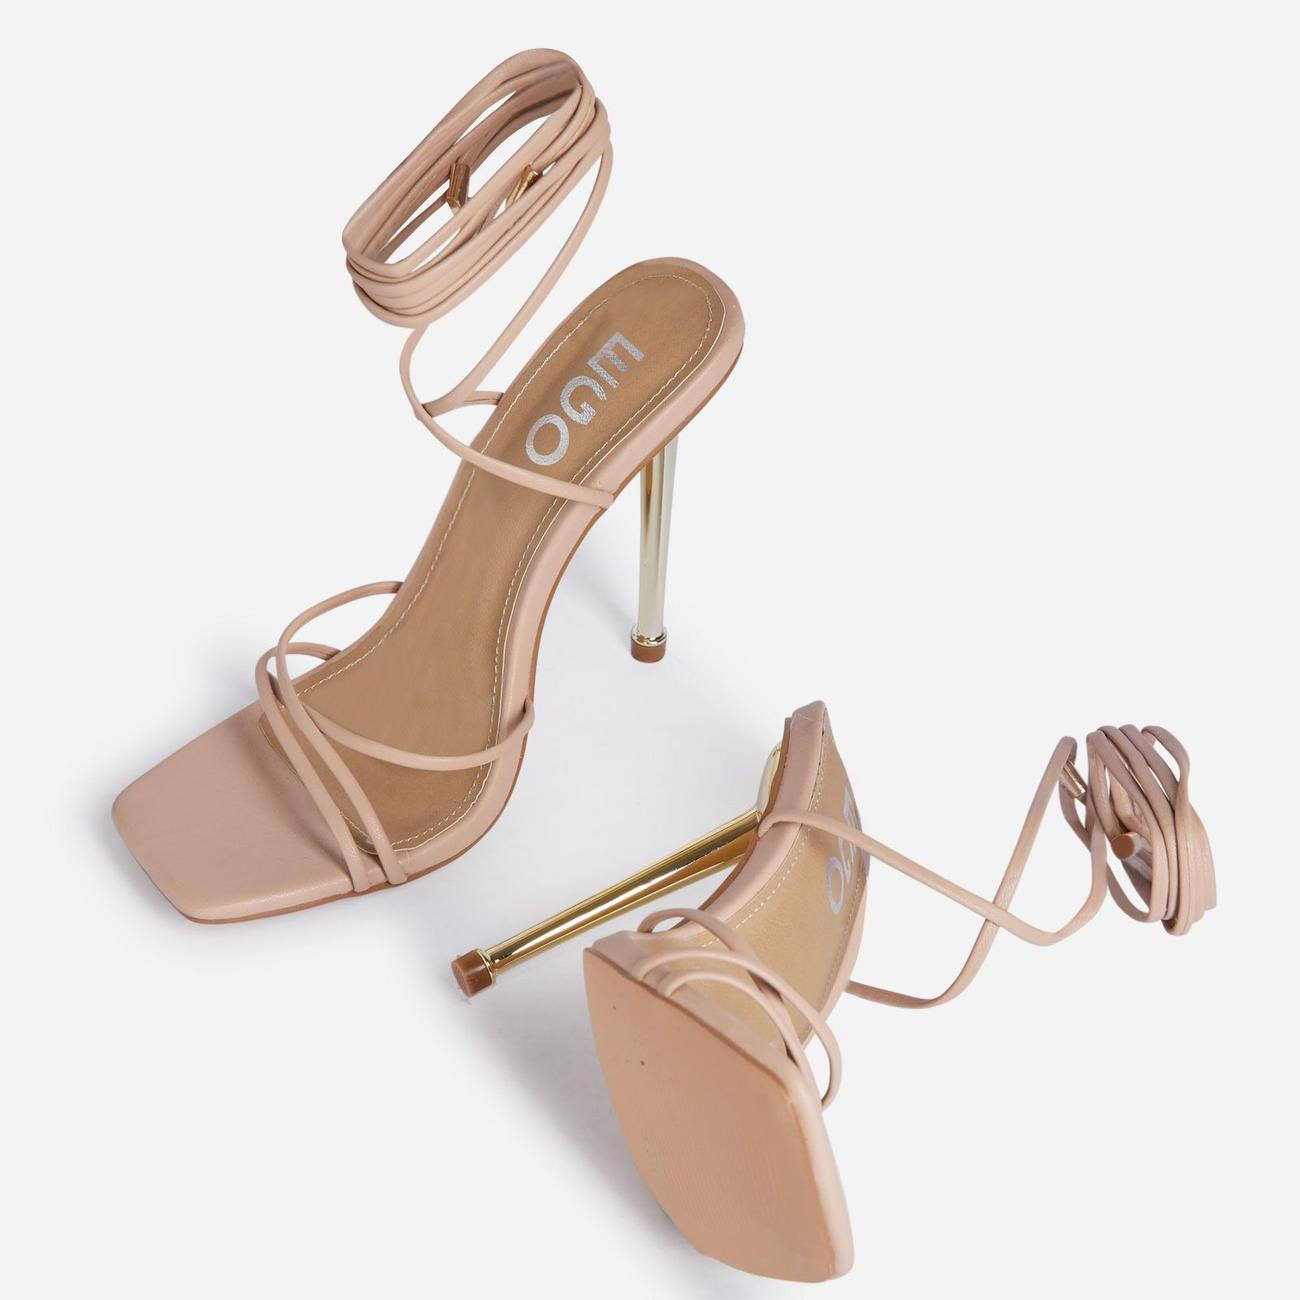 Word-Up Lace Up Square Toe Heel In Nude Faux Leather Image 4